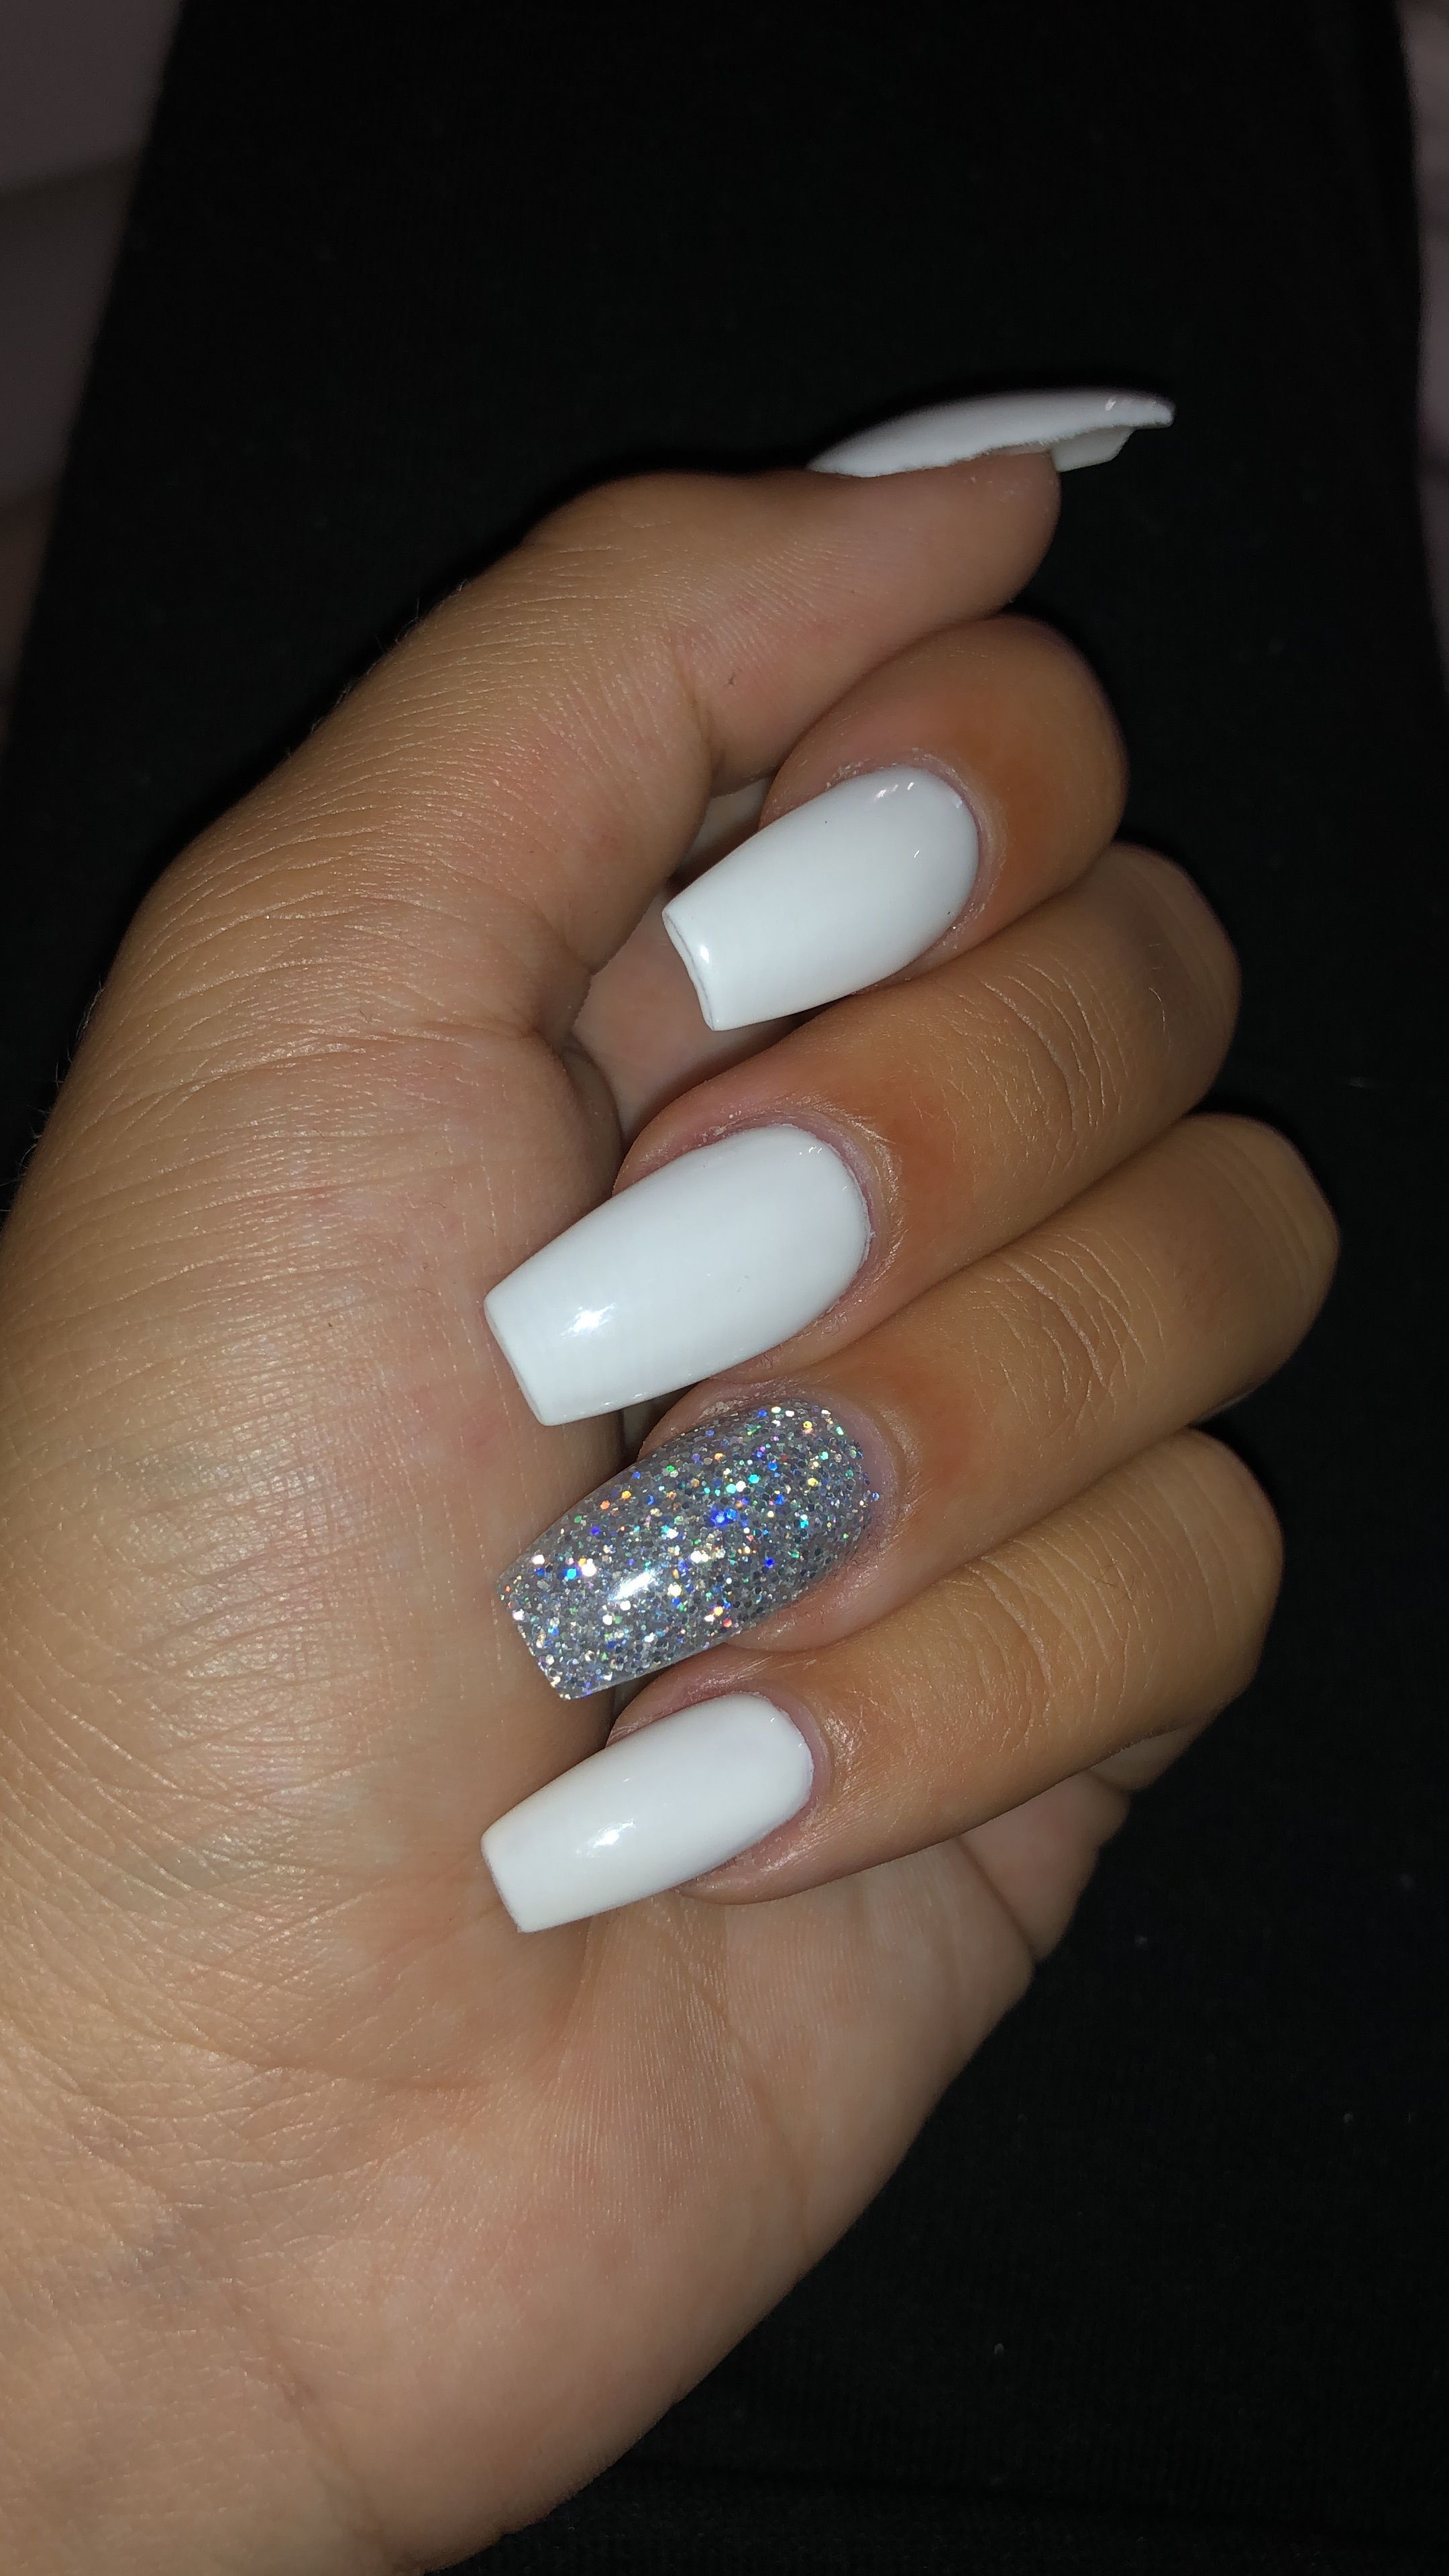 White Nail Art Design For 2020 In 2020 Acrylic Nails Coffin Short Pink Acrylic Nails Simple Acrylic Nails